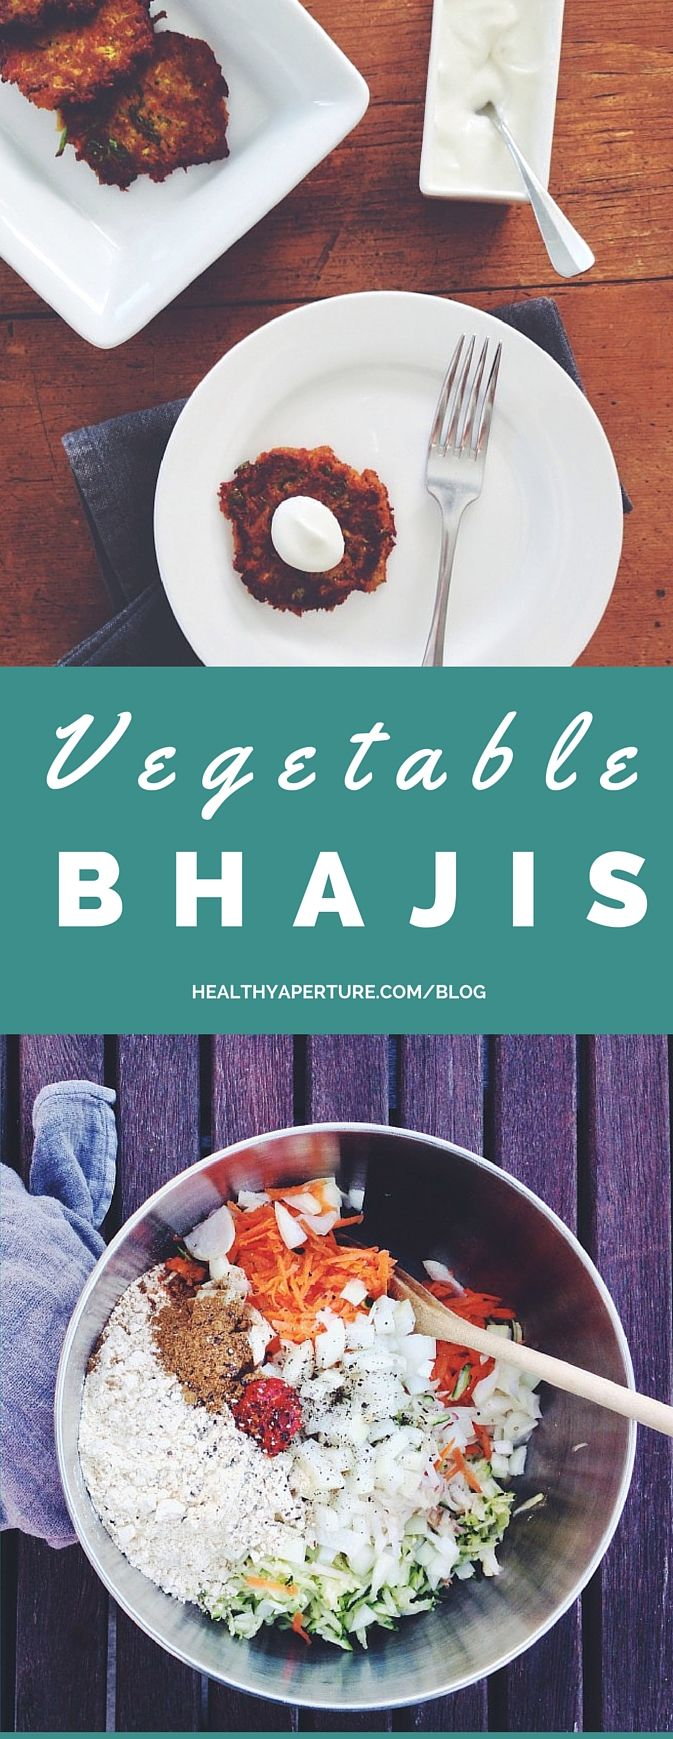 These Vegetable Bhajis are quick, easy to make and make a great appetizer or light dinner!